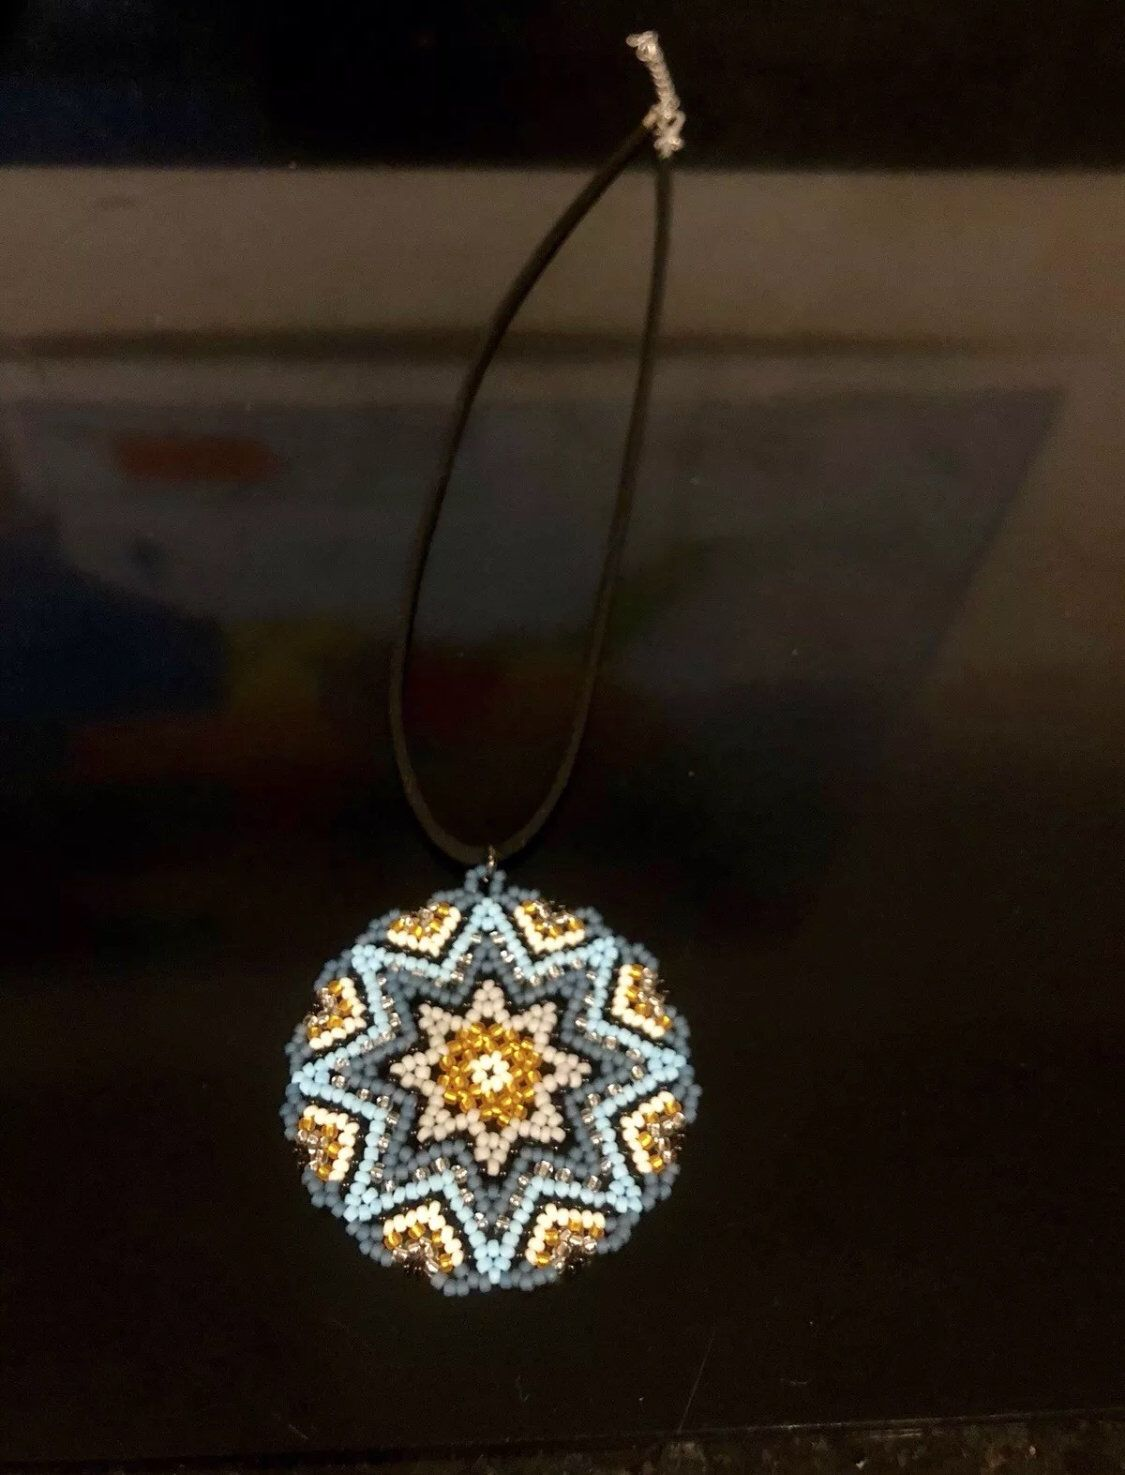 Excited to share the latest addition to my etsy shop beaded circle excited to share the latest addition to my etsy shop beaded circle huichol beading aloadofball Gallery